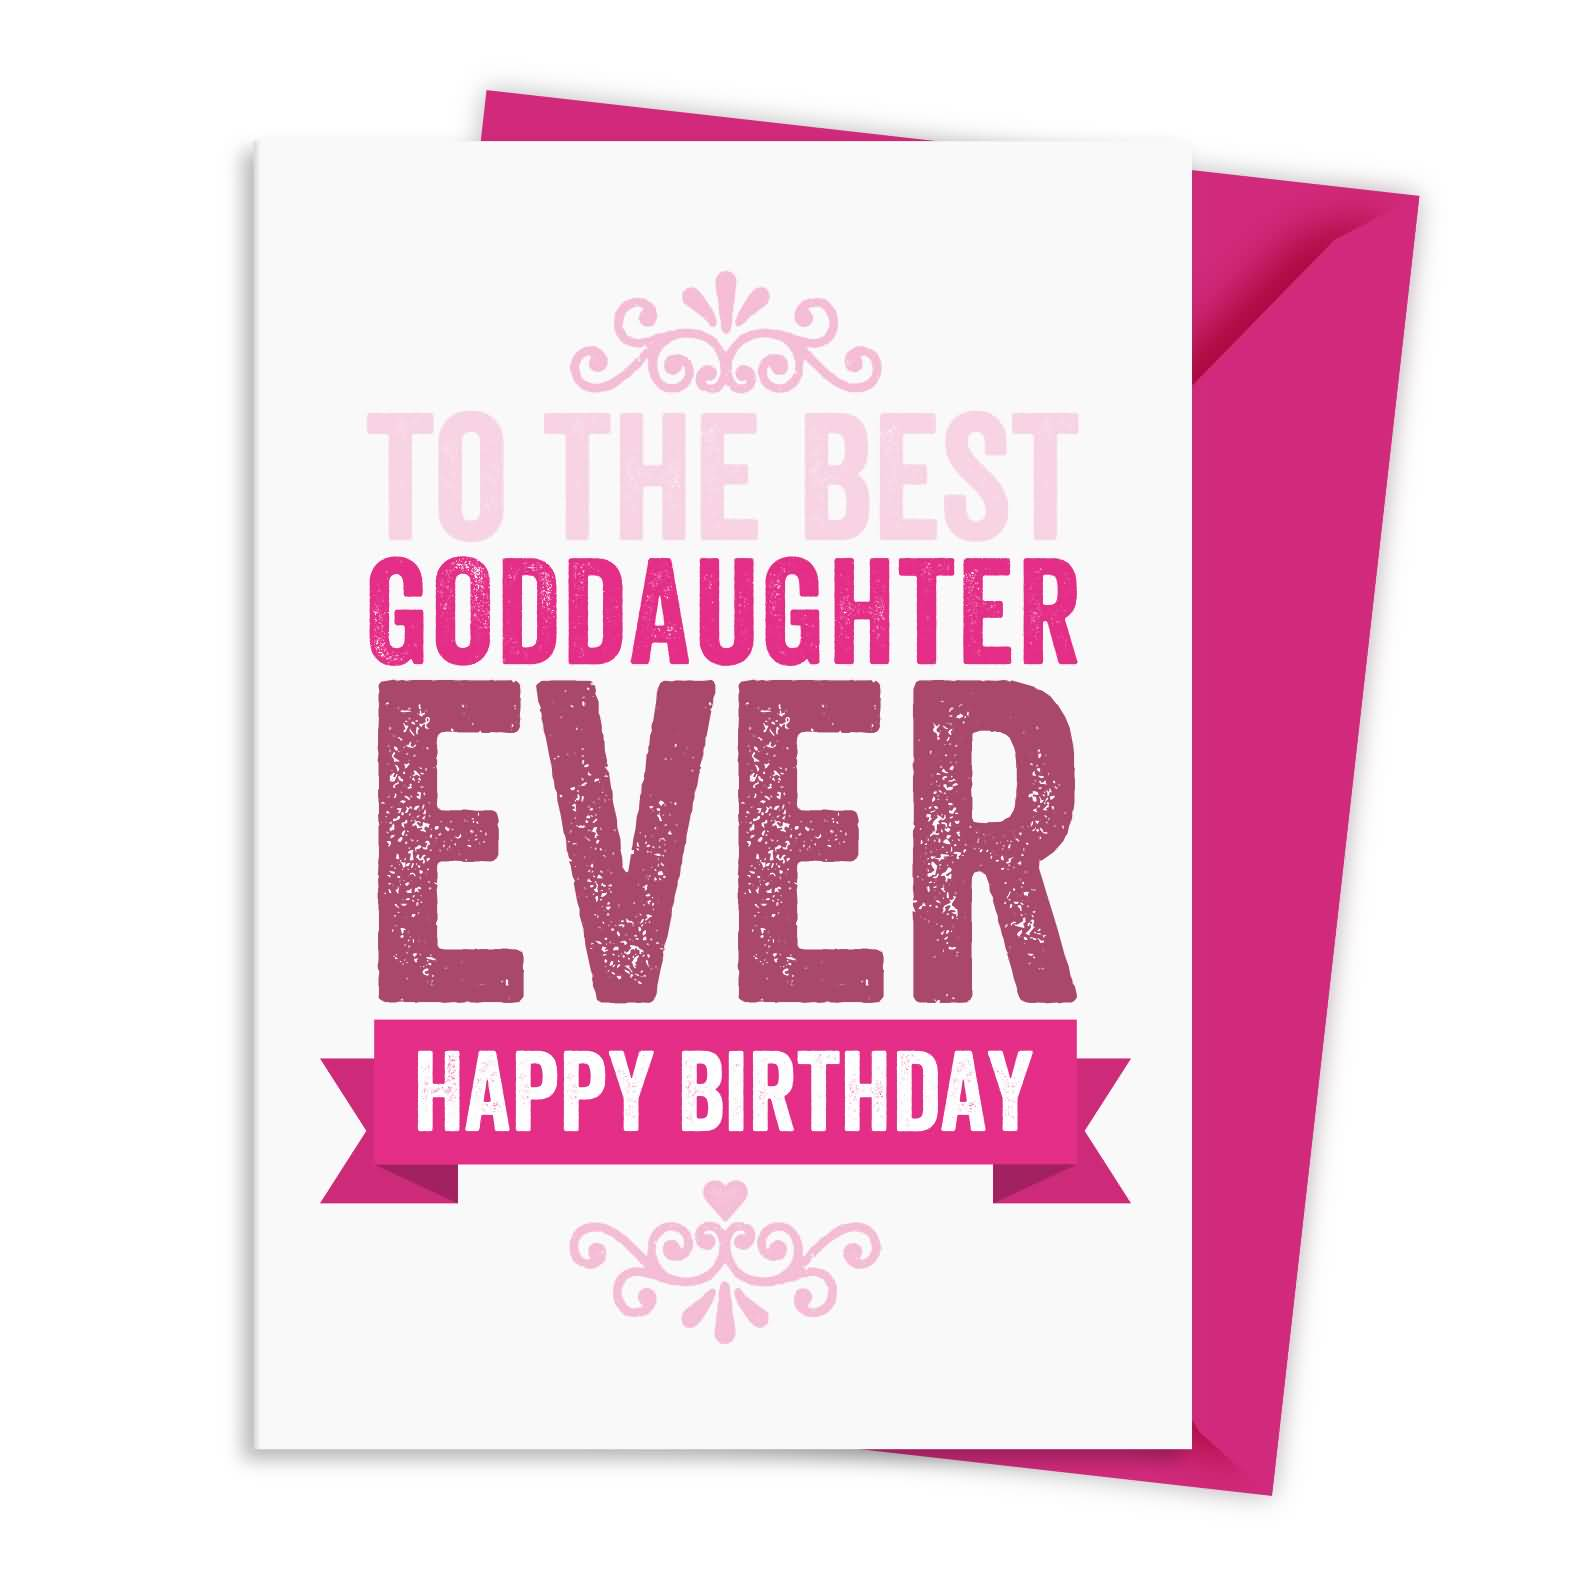 To The Best Goddaughter Ever Happy Birthday